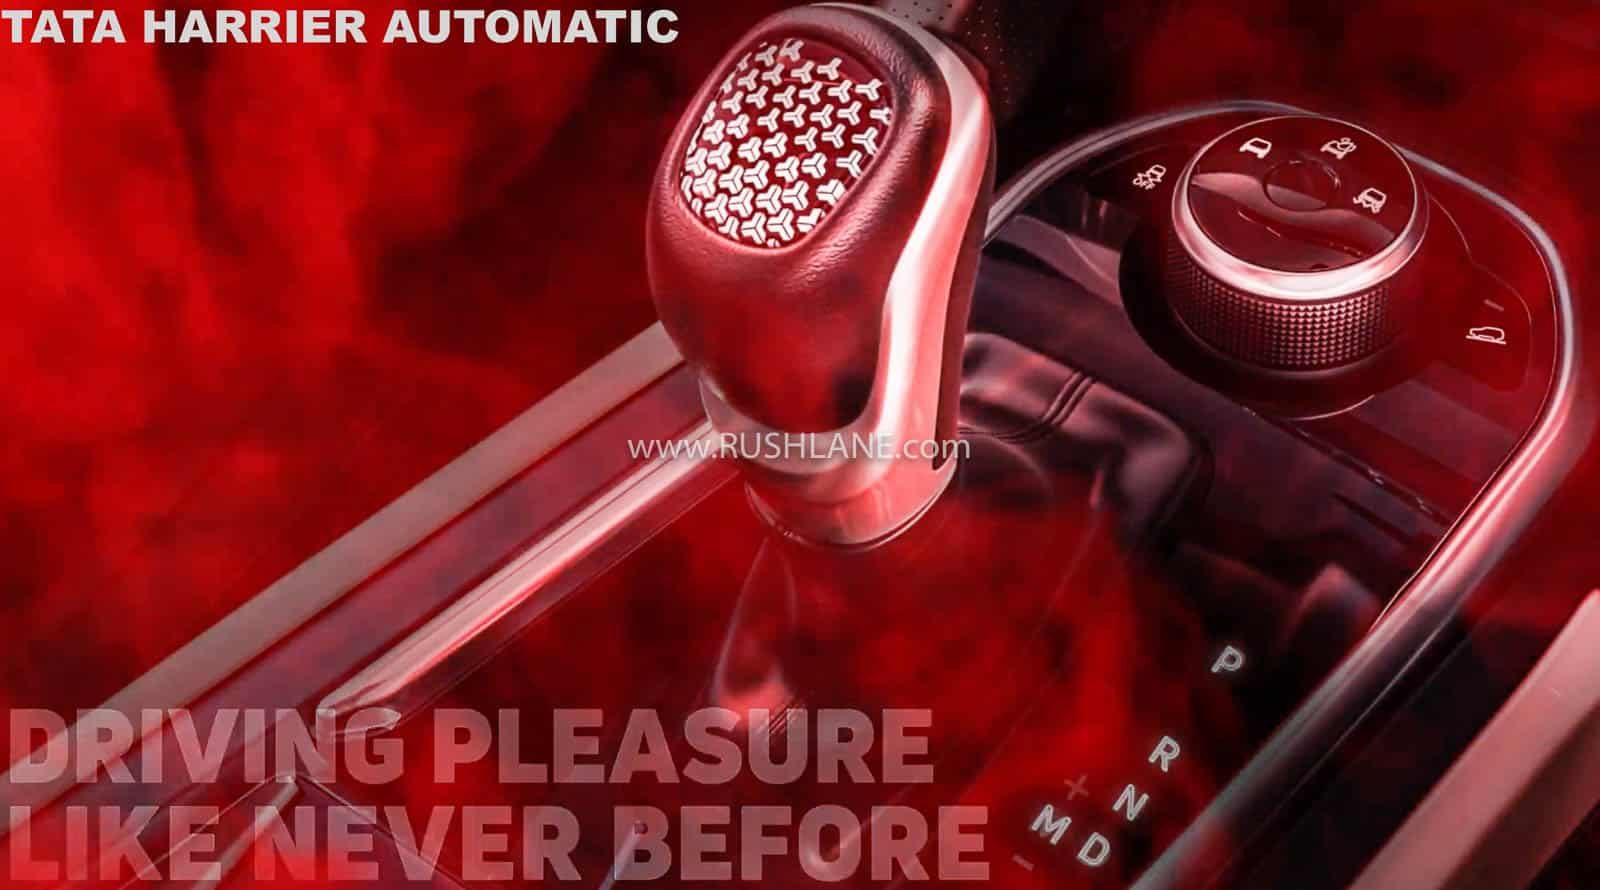 Tata Harrier automatic drive modes